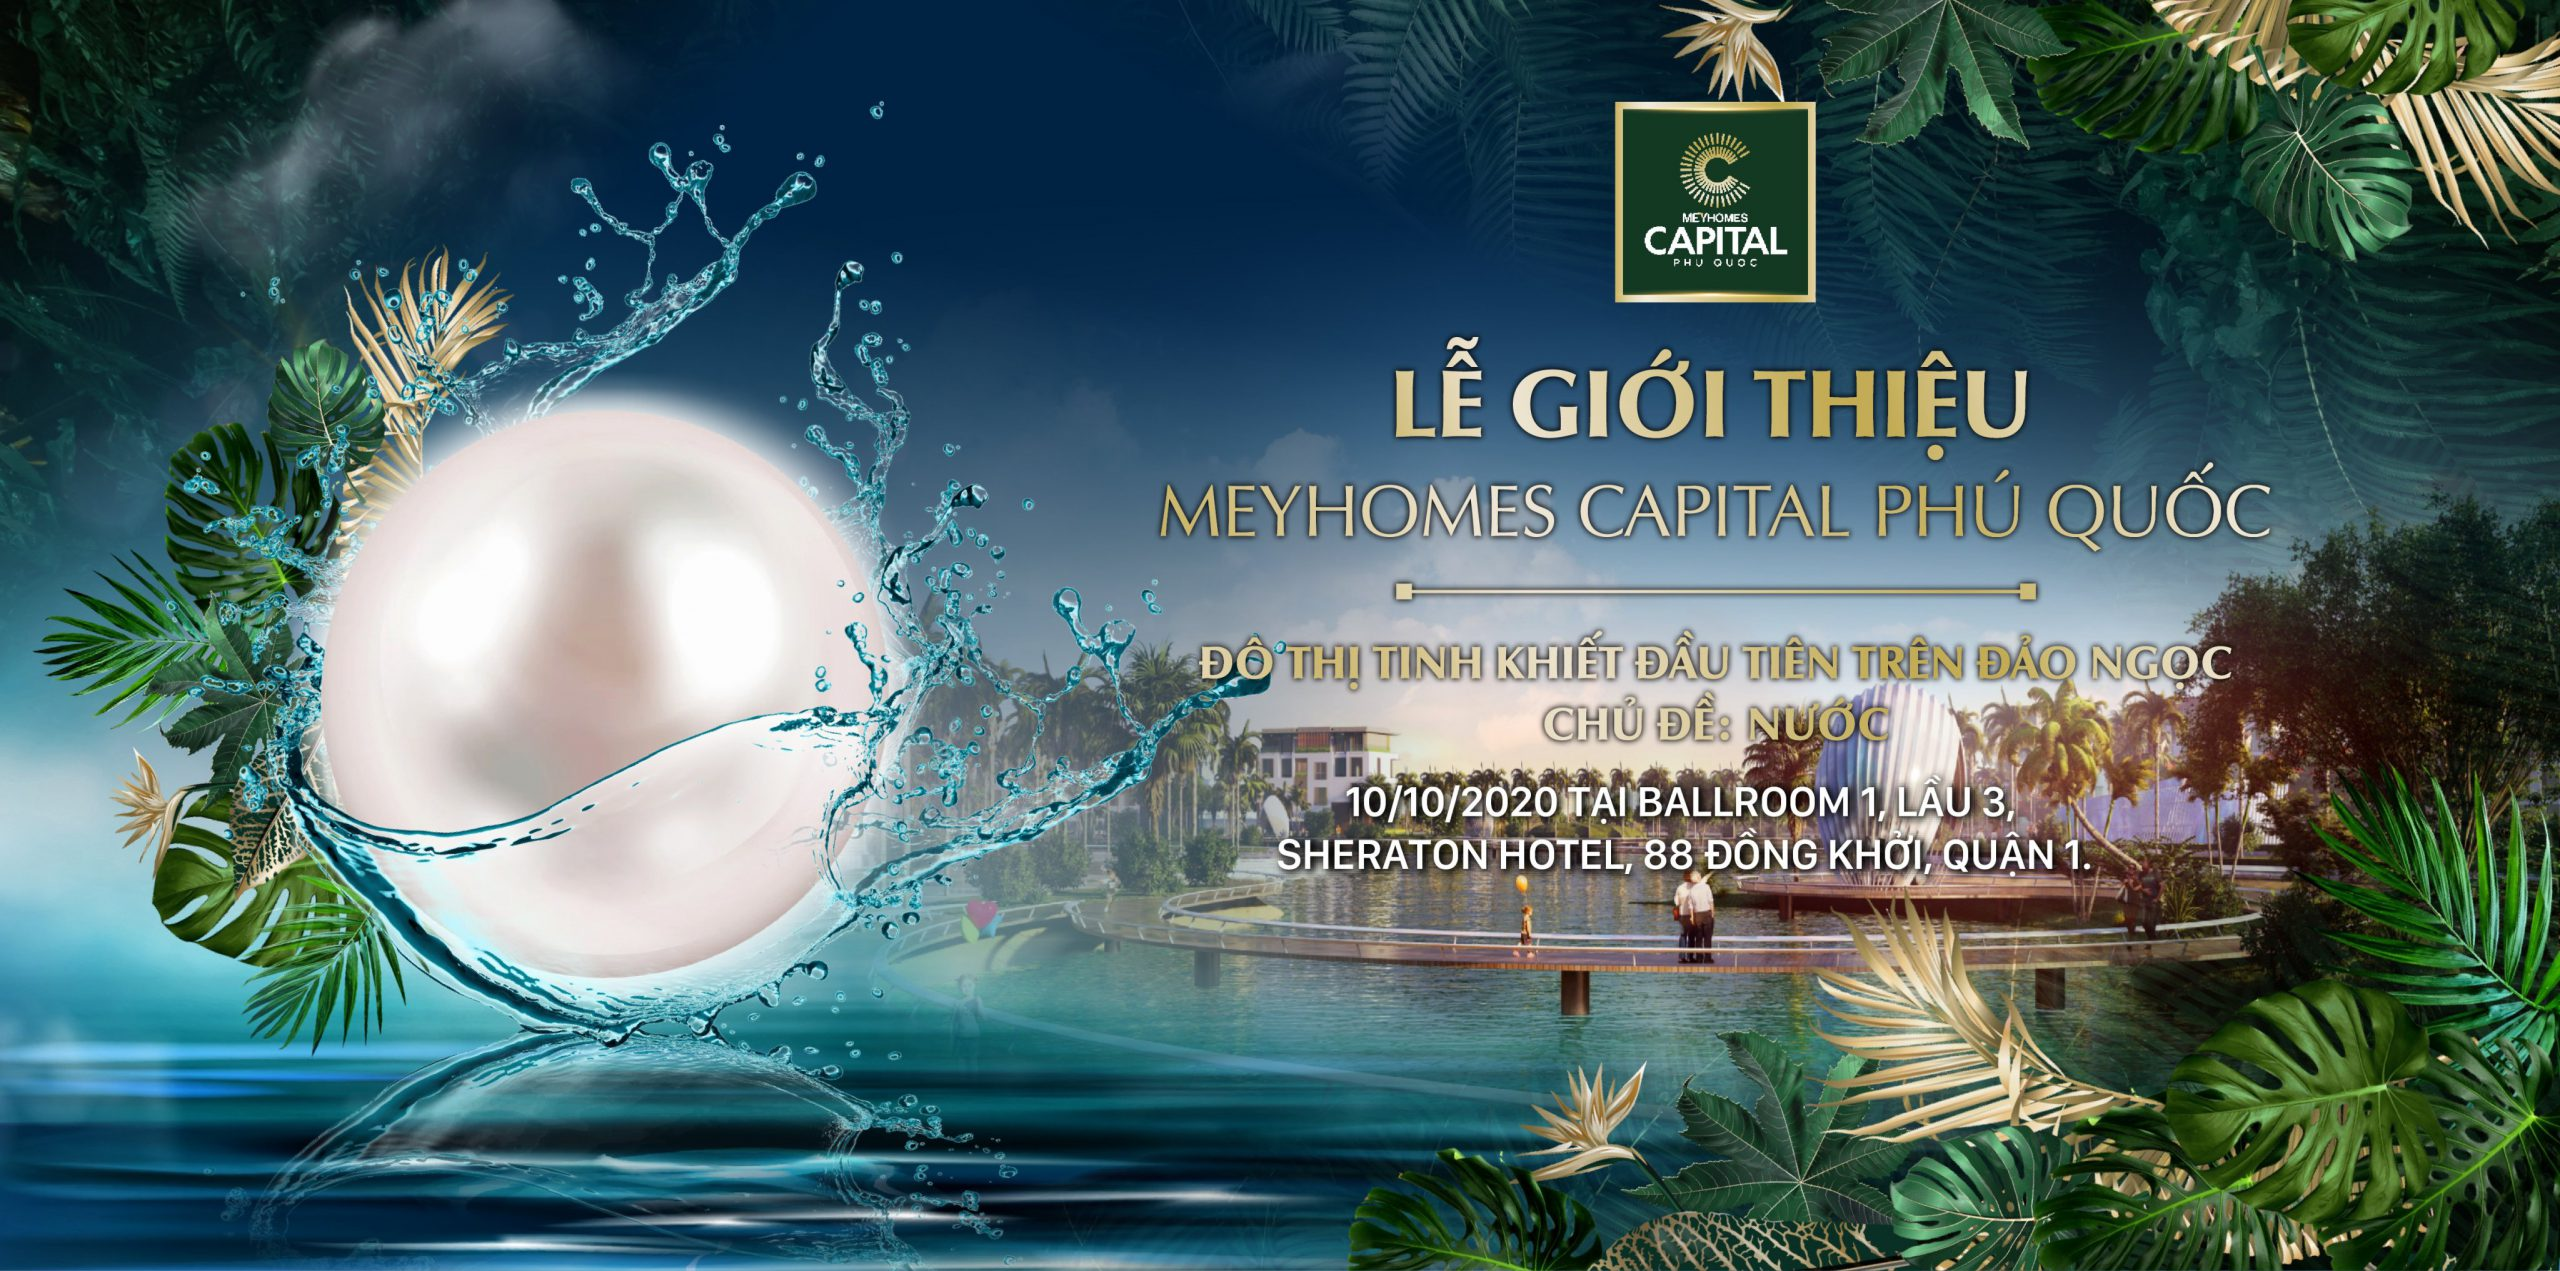 event-meyhomes-capital-phu-quoc